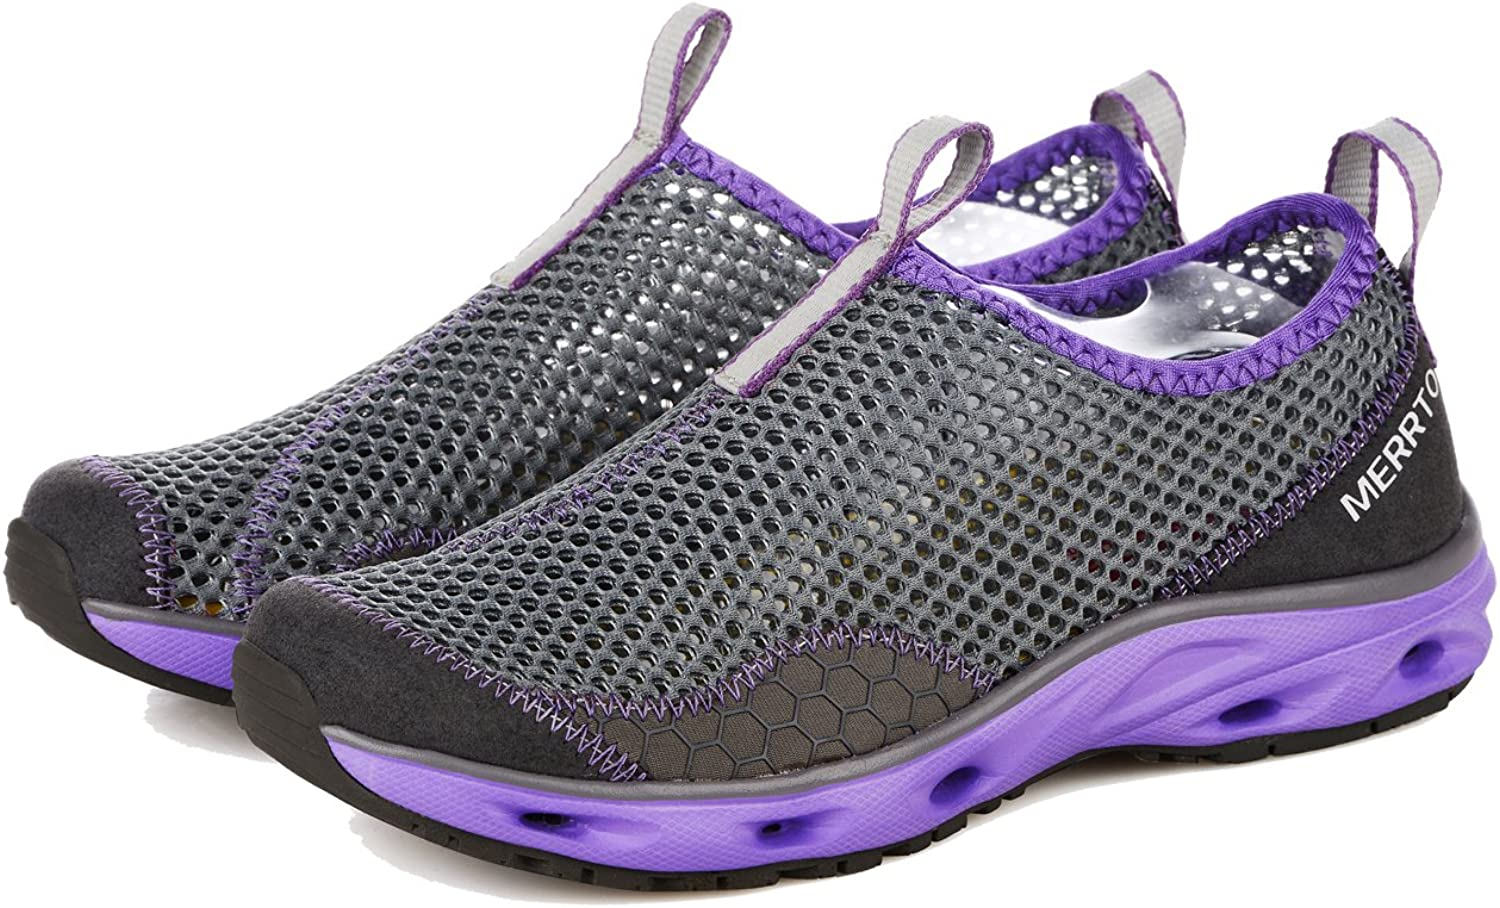 Qianling Collection Women's Outdoor Footwear Textile Walking shoes